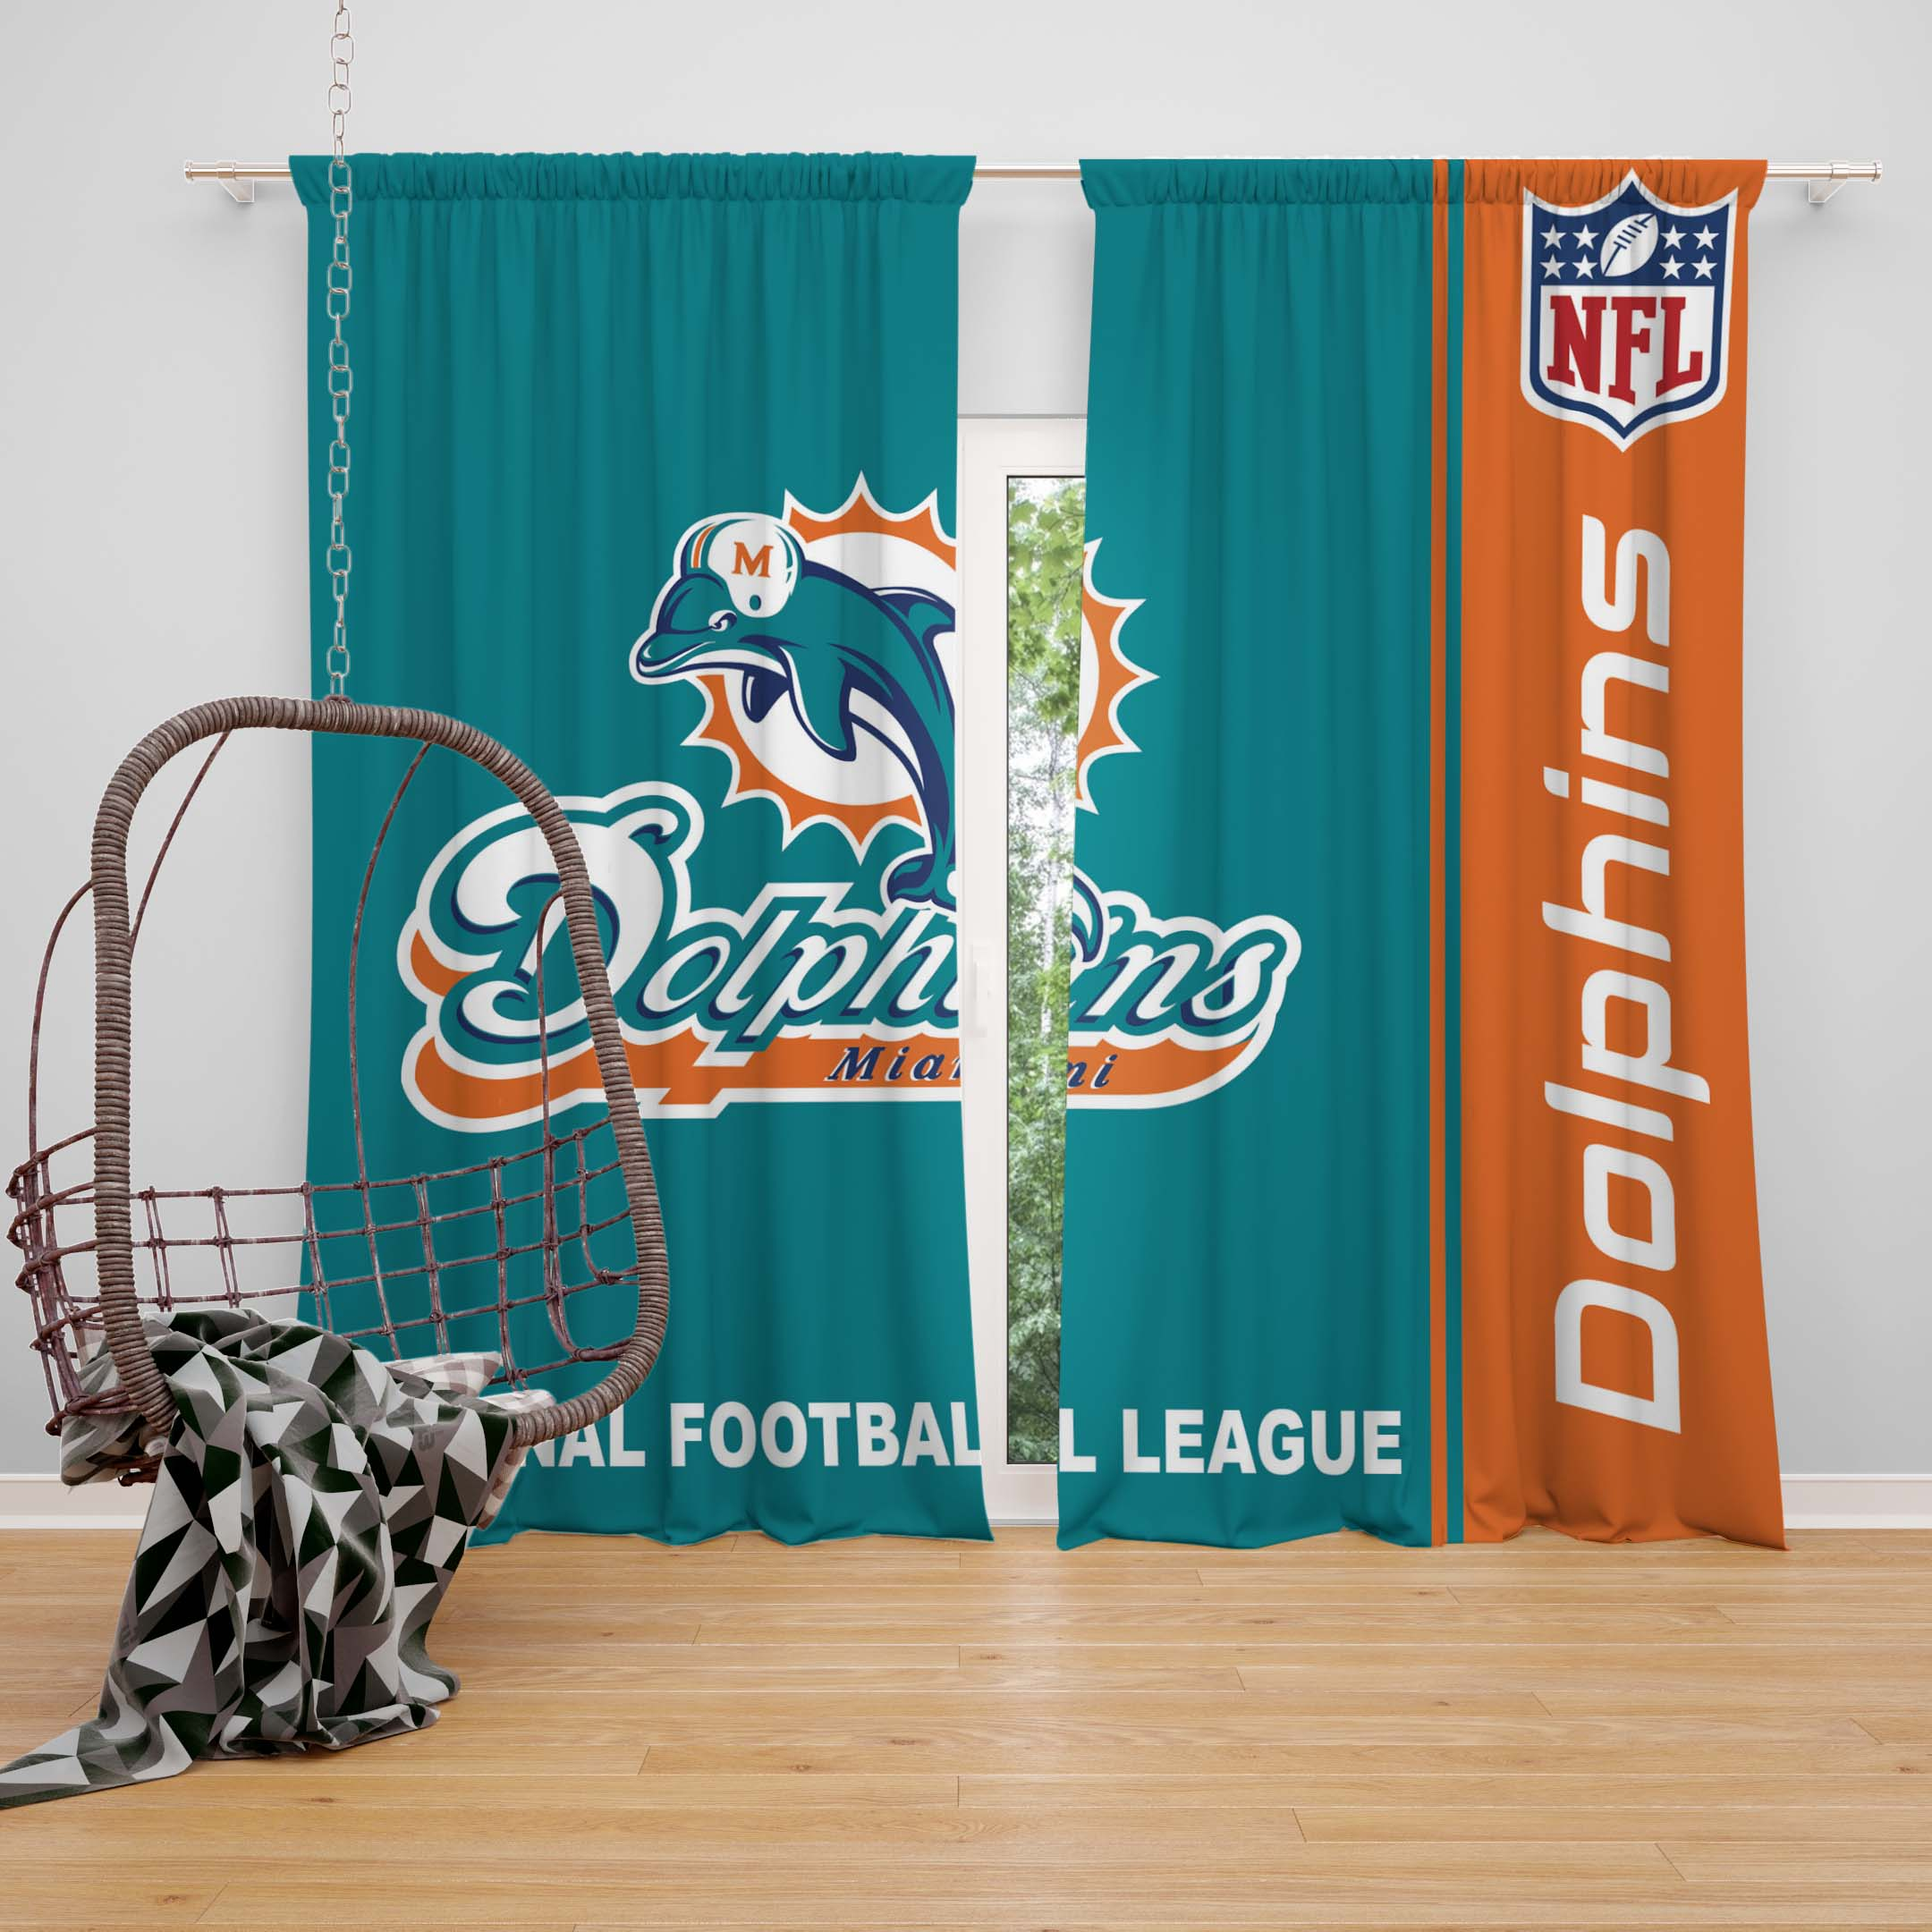 Nfl Miami Dolphins Bedroom Curtain Ebeddingsets